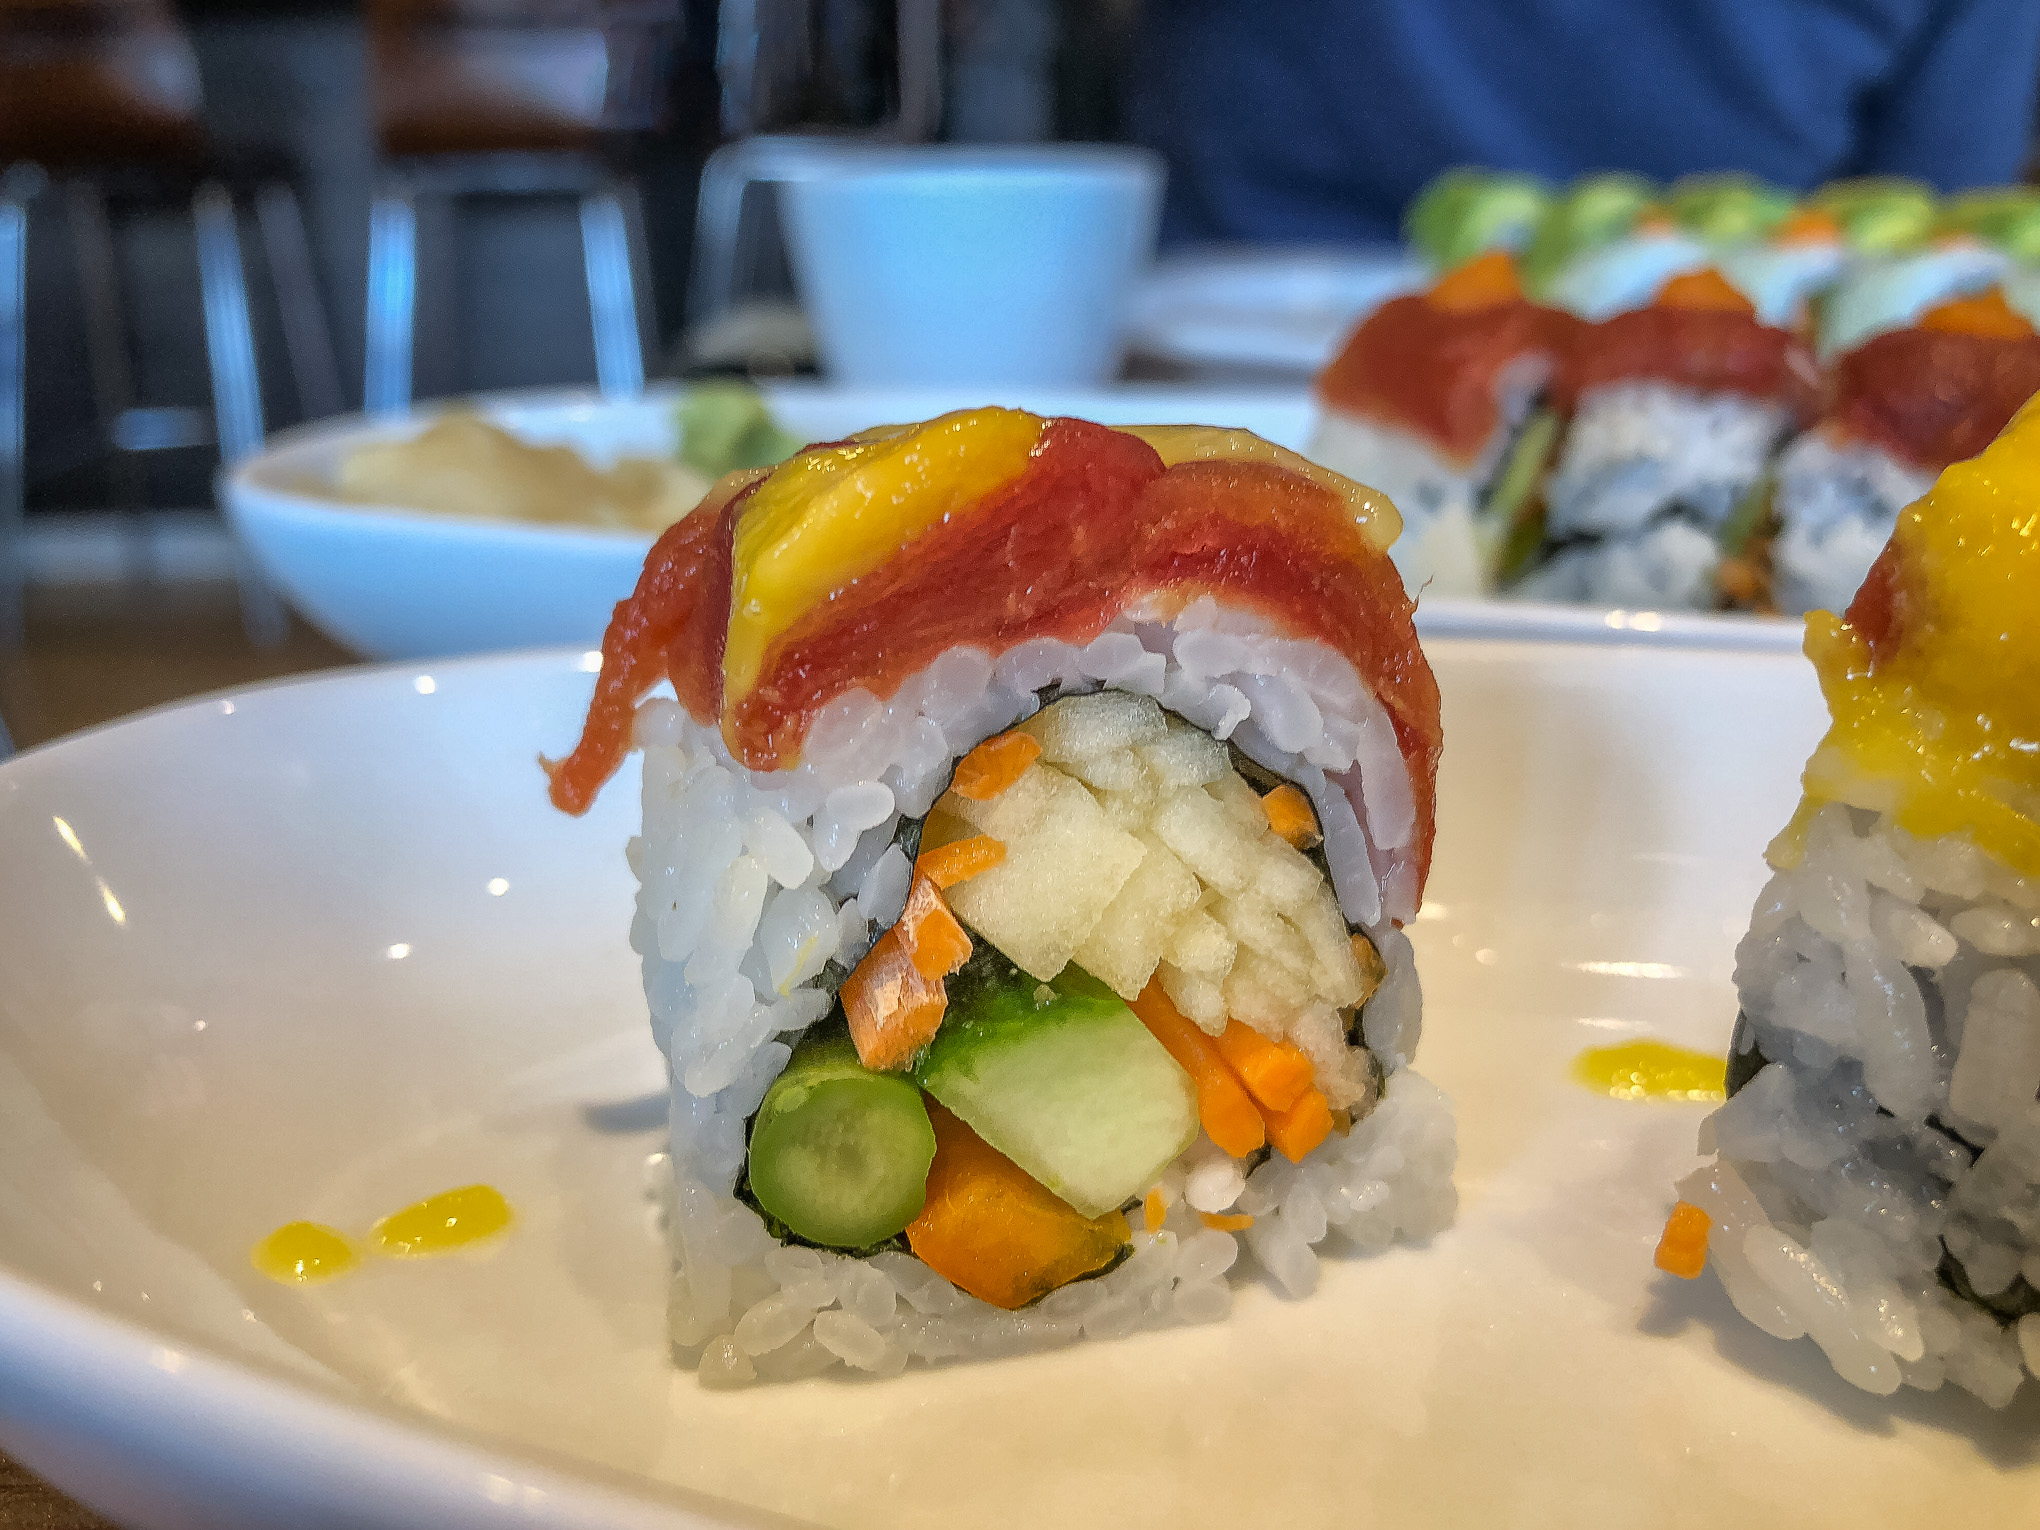 Close up picture of a sushi roll topped with tomato